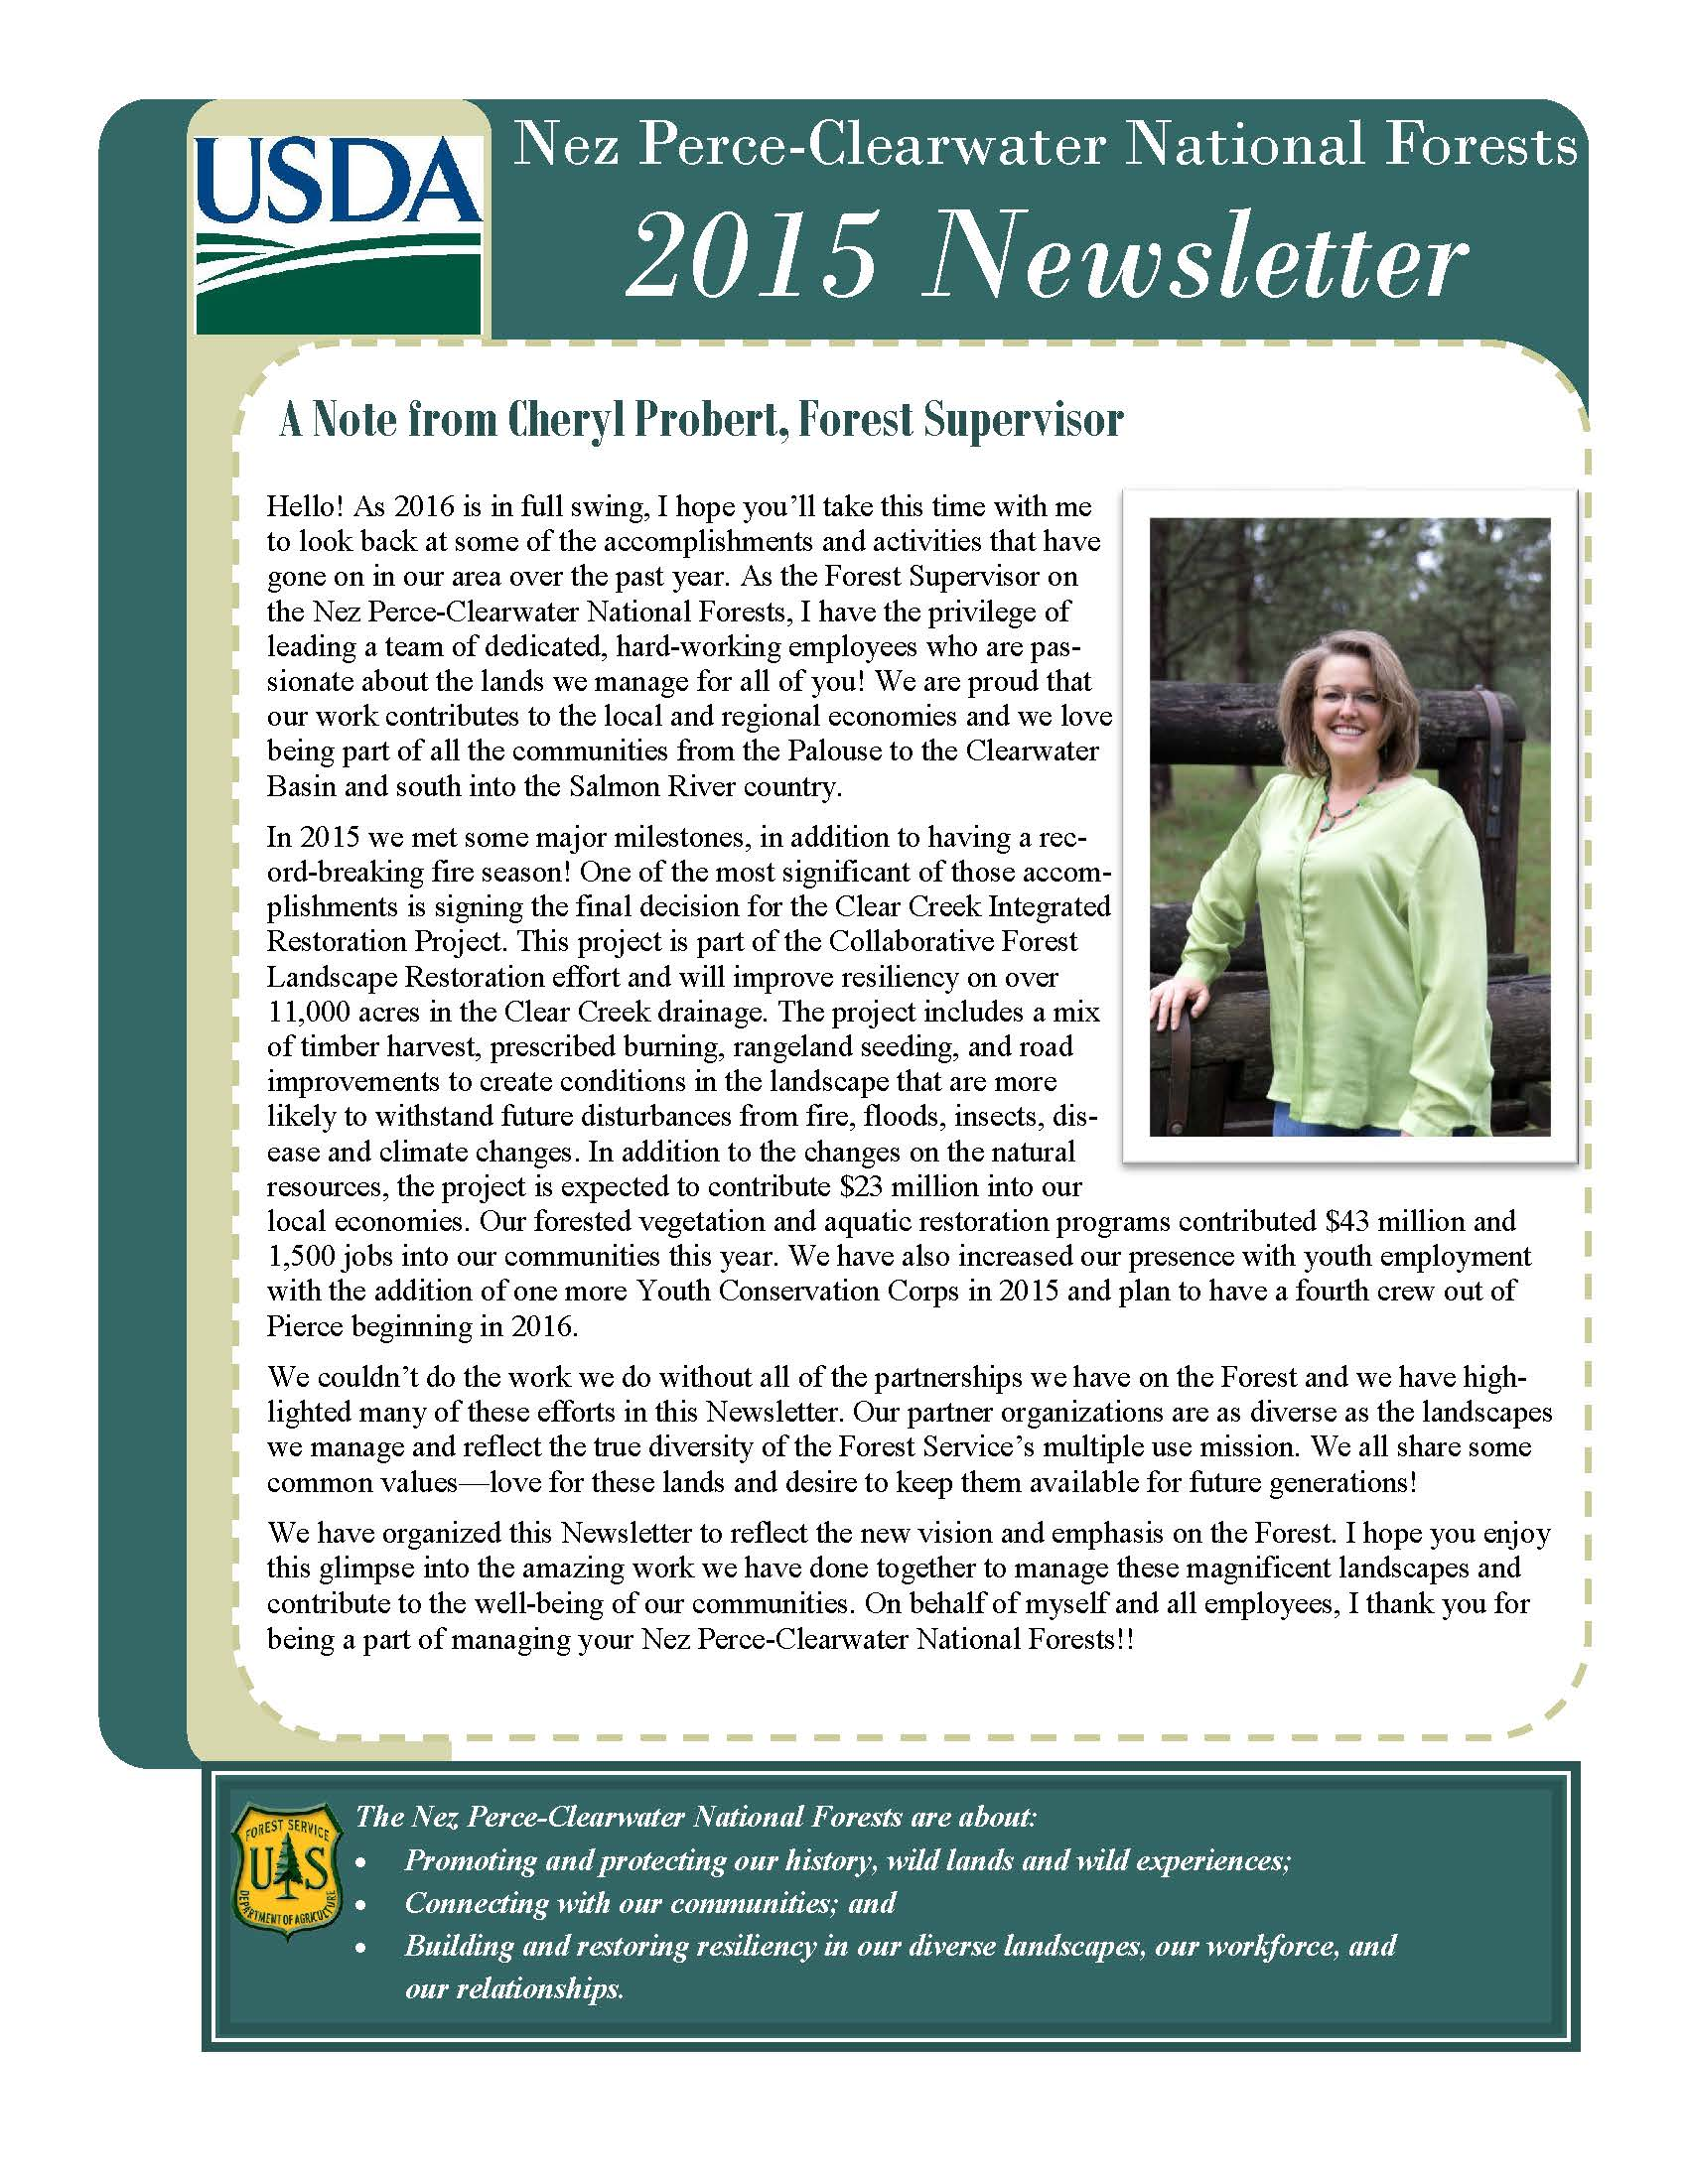 Cover of forest newsletter with photo of Cheryl Probert